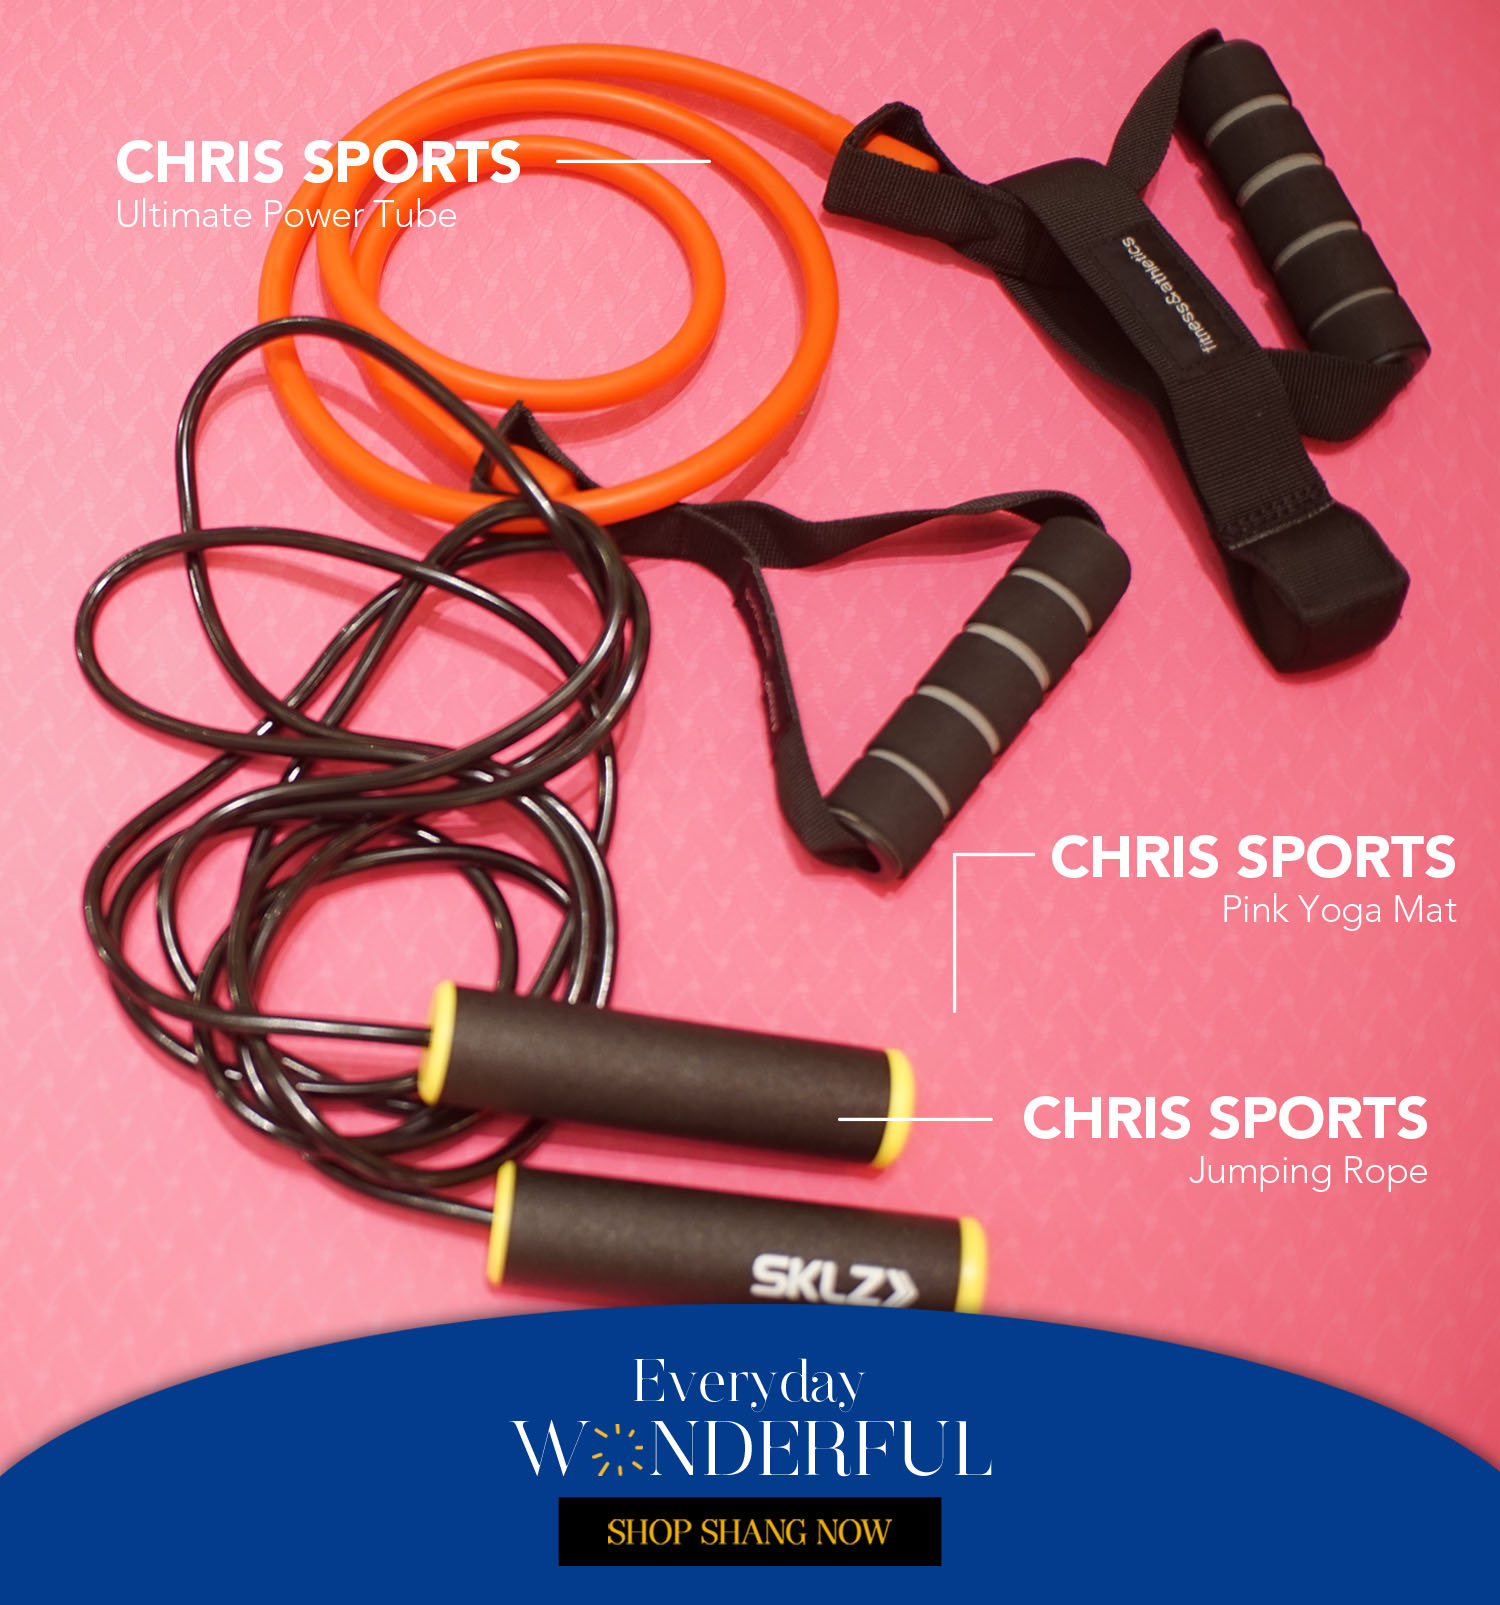 Ultimate Power Tube_Pink Yoga Mat_Jumping Rope from Chris Sports